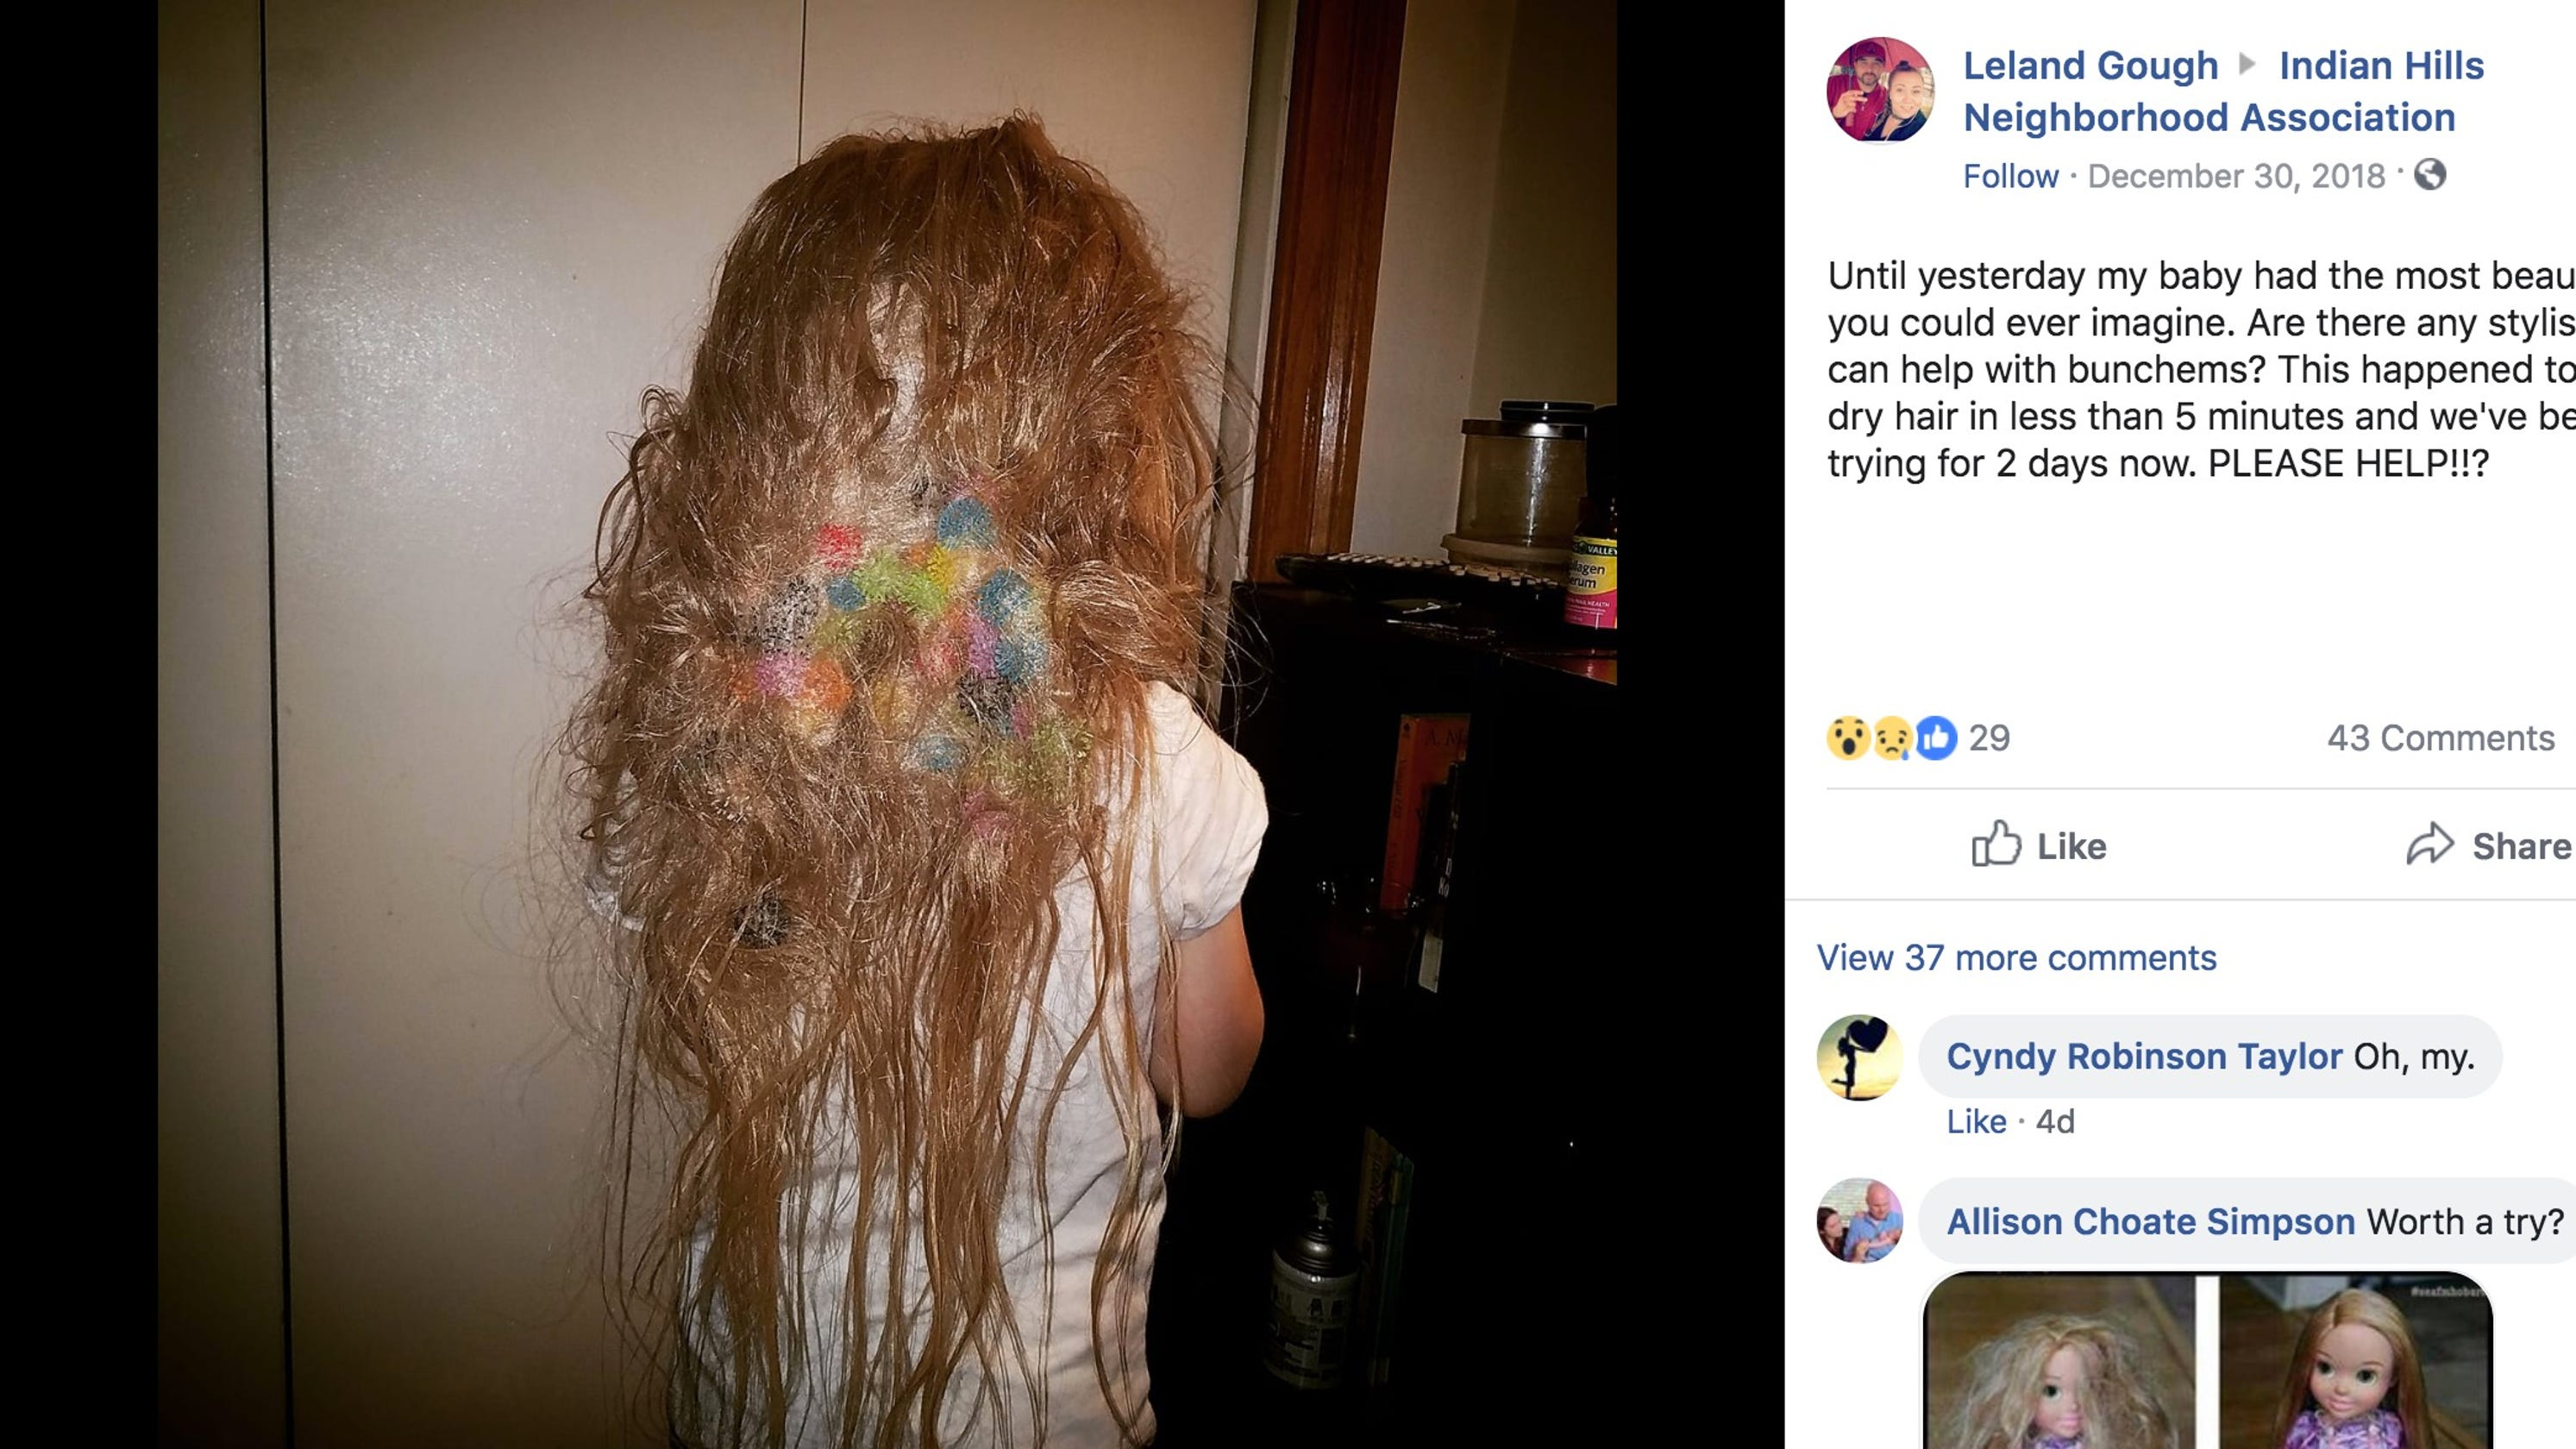 Over 50 Bunchems Tangled In Hair Arkansas Mom Warns Parents About Toy